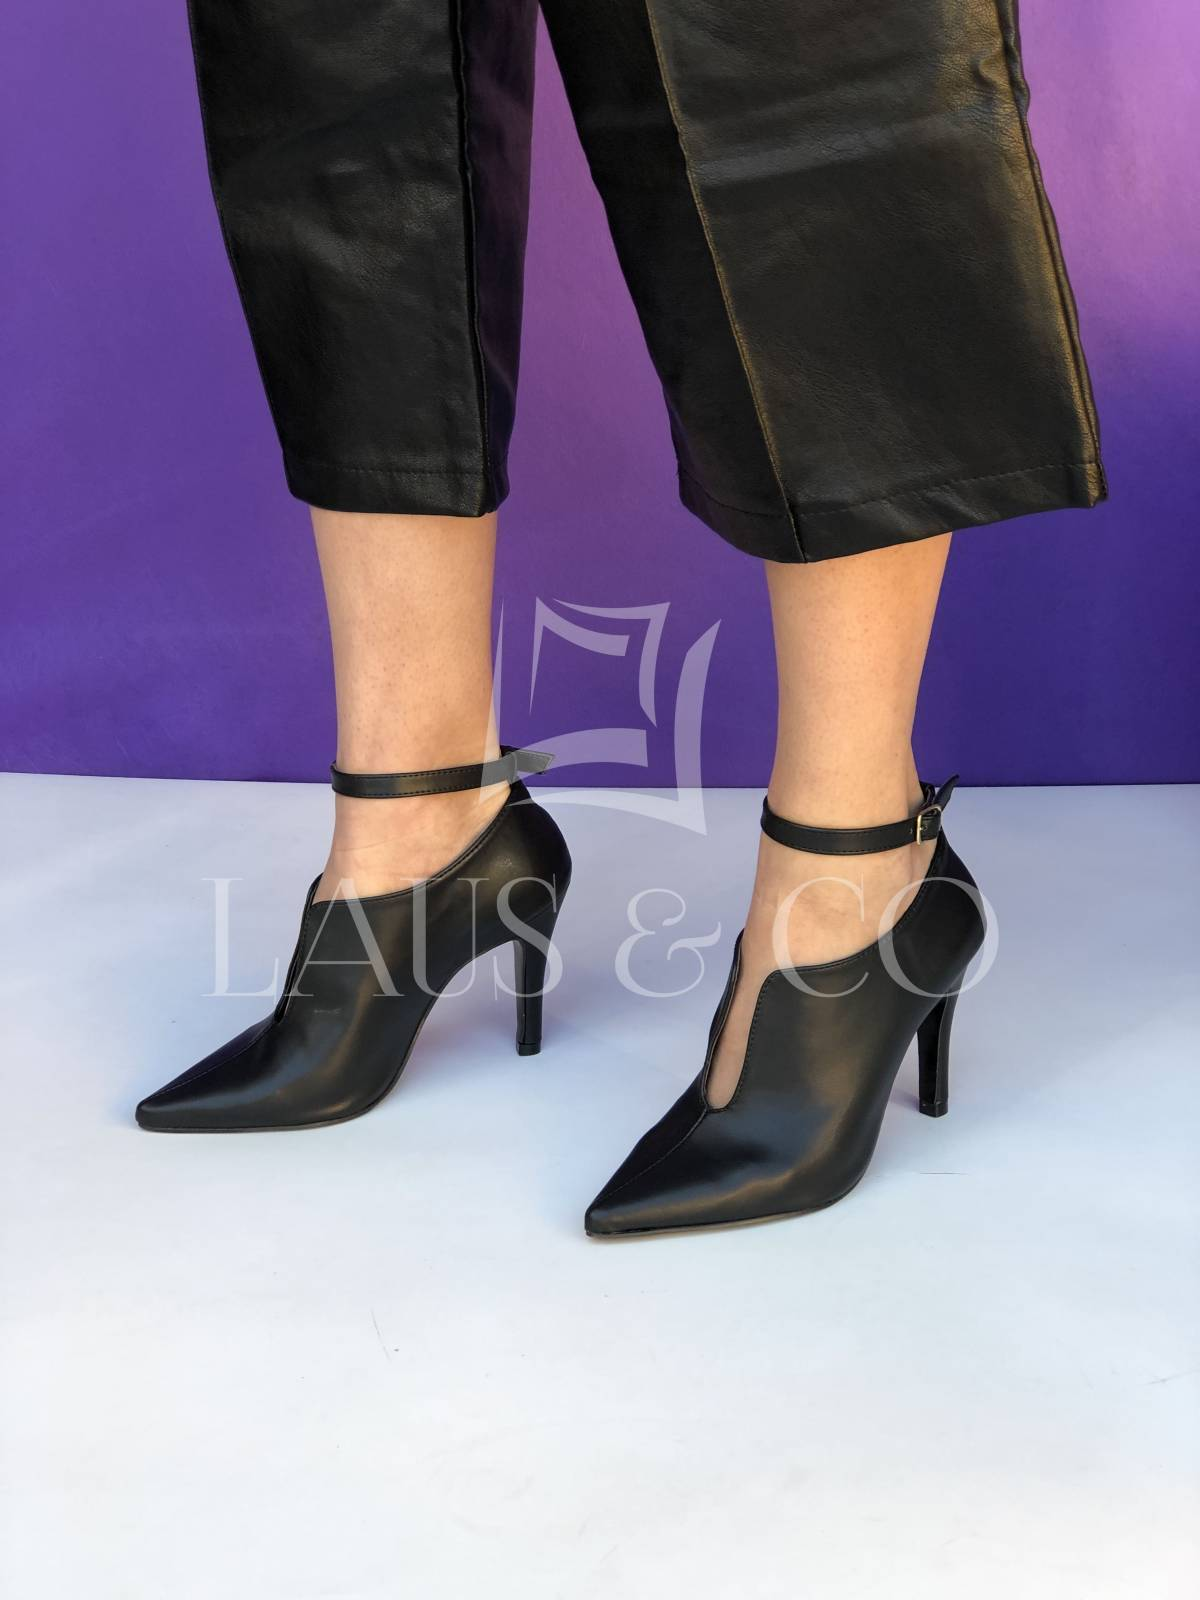 Ankle Boot Black - LAUS & CO